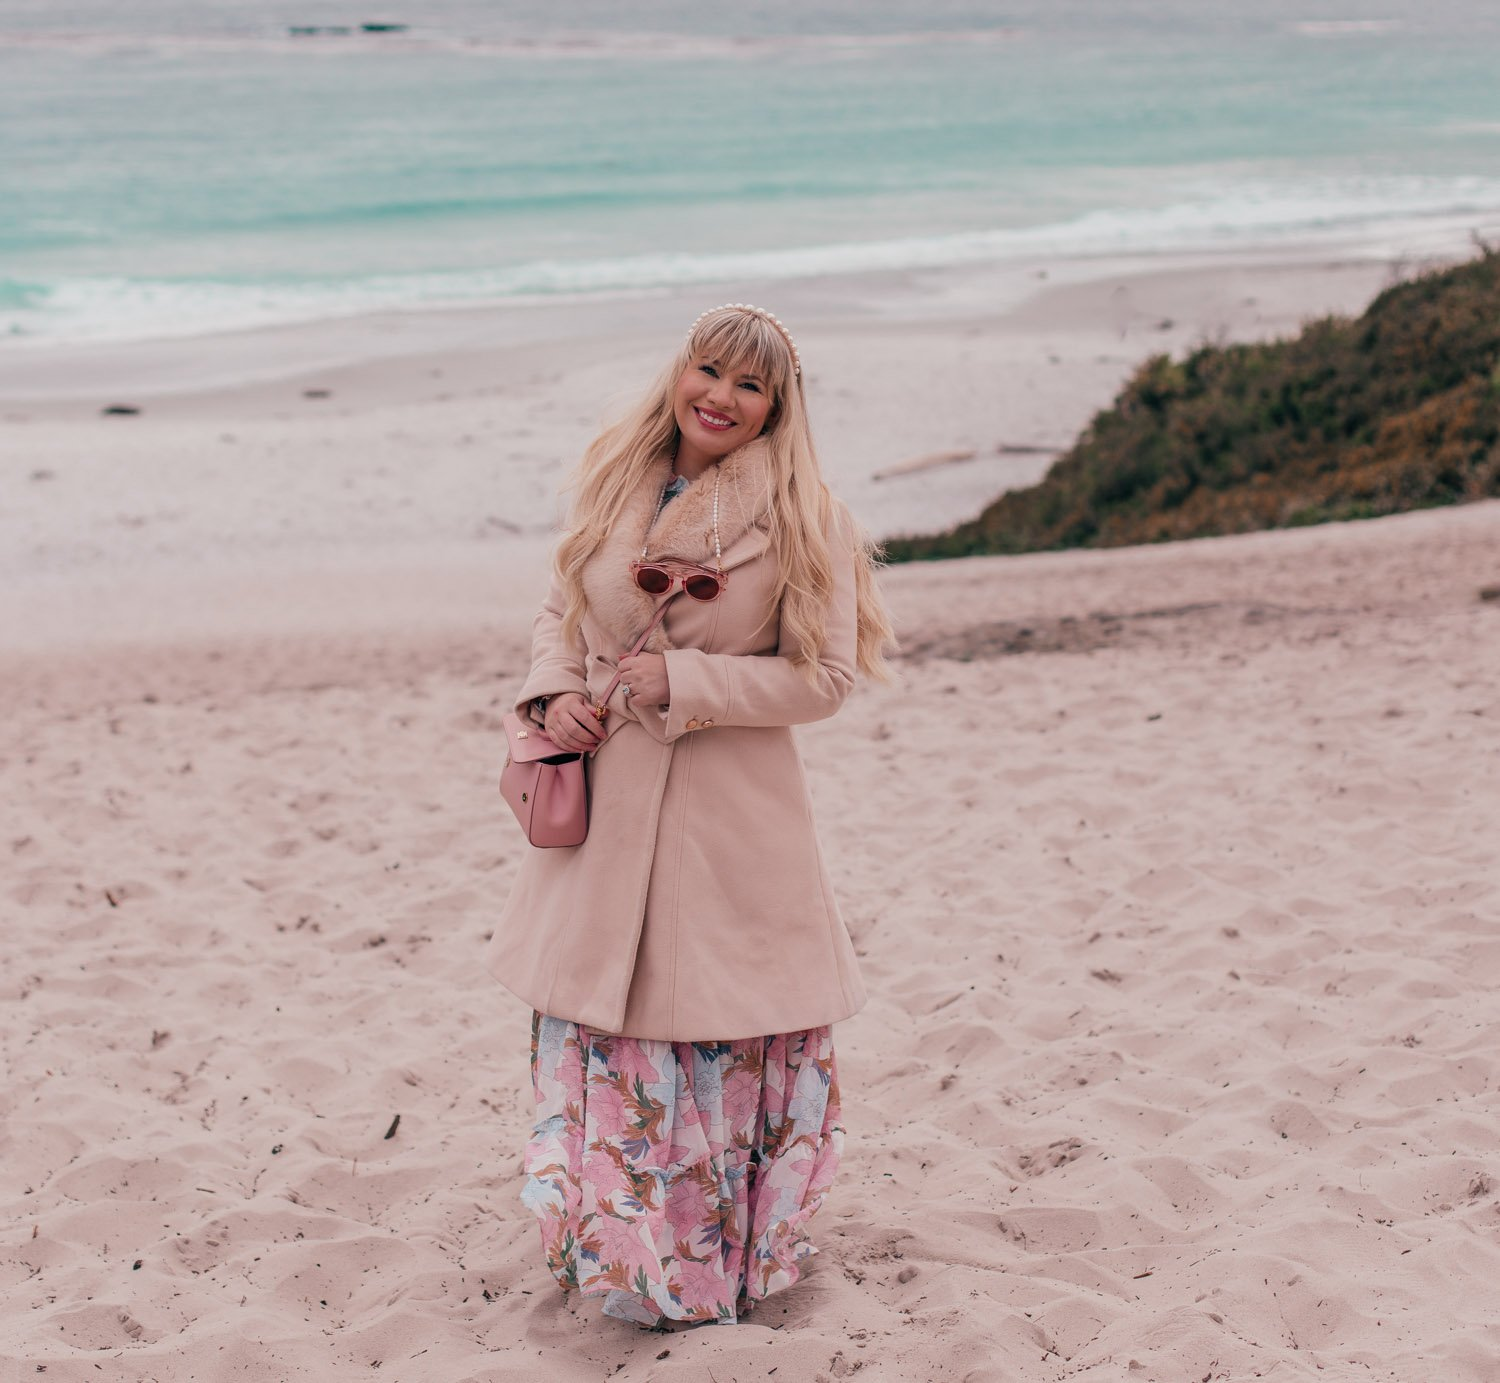 Fashion Blogger Elizabeth Hugen of Lizzie in Lace shares what to do in Carmel by-the-sea and includes her favorite feminine travel outfit ideas like this Chicwish coat and floral dress